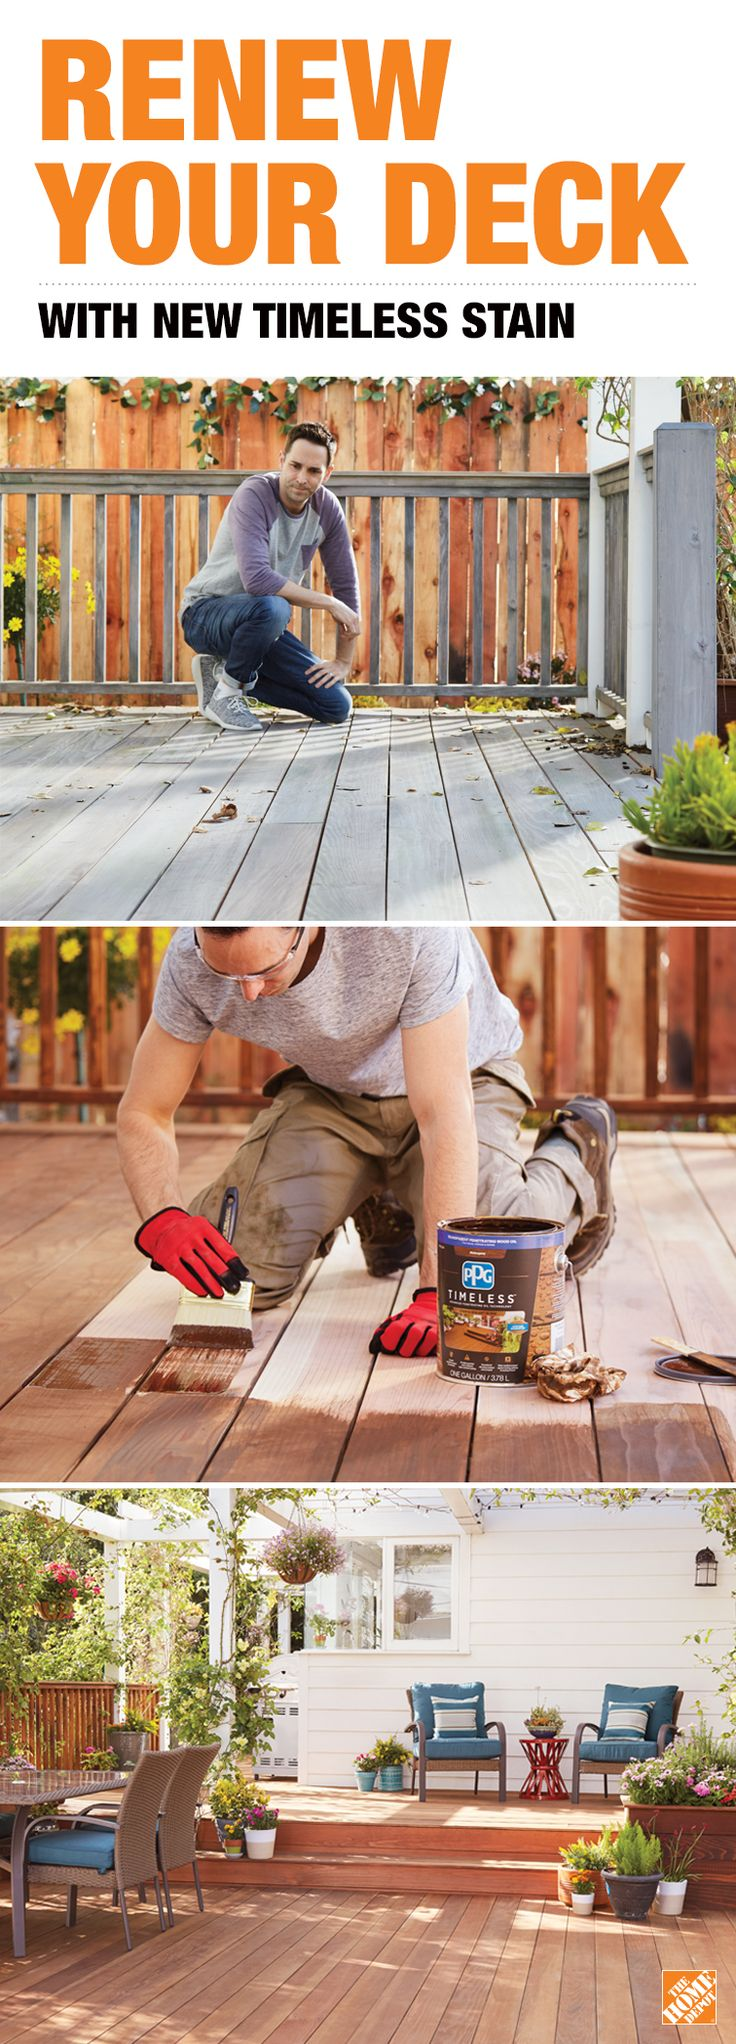 Renew your weather-beaten deck with a stain that will look great and stand up to the elements for years to come. It's Timeless Stain, new from PPG, a brand trusted by pros for over 100 years. Only at The Home Depot.